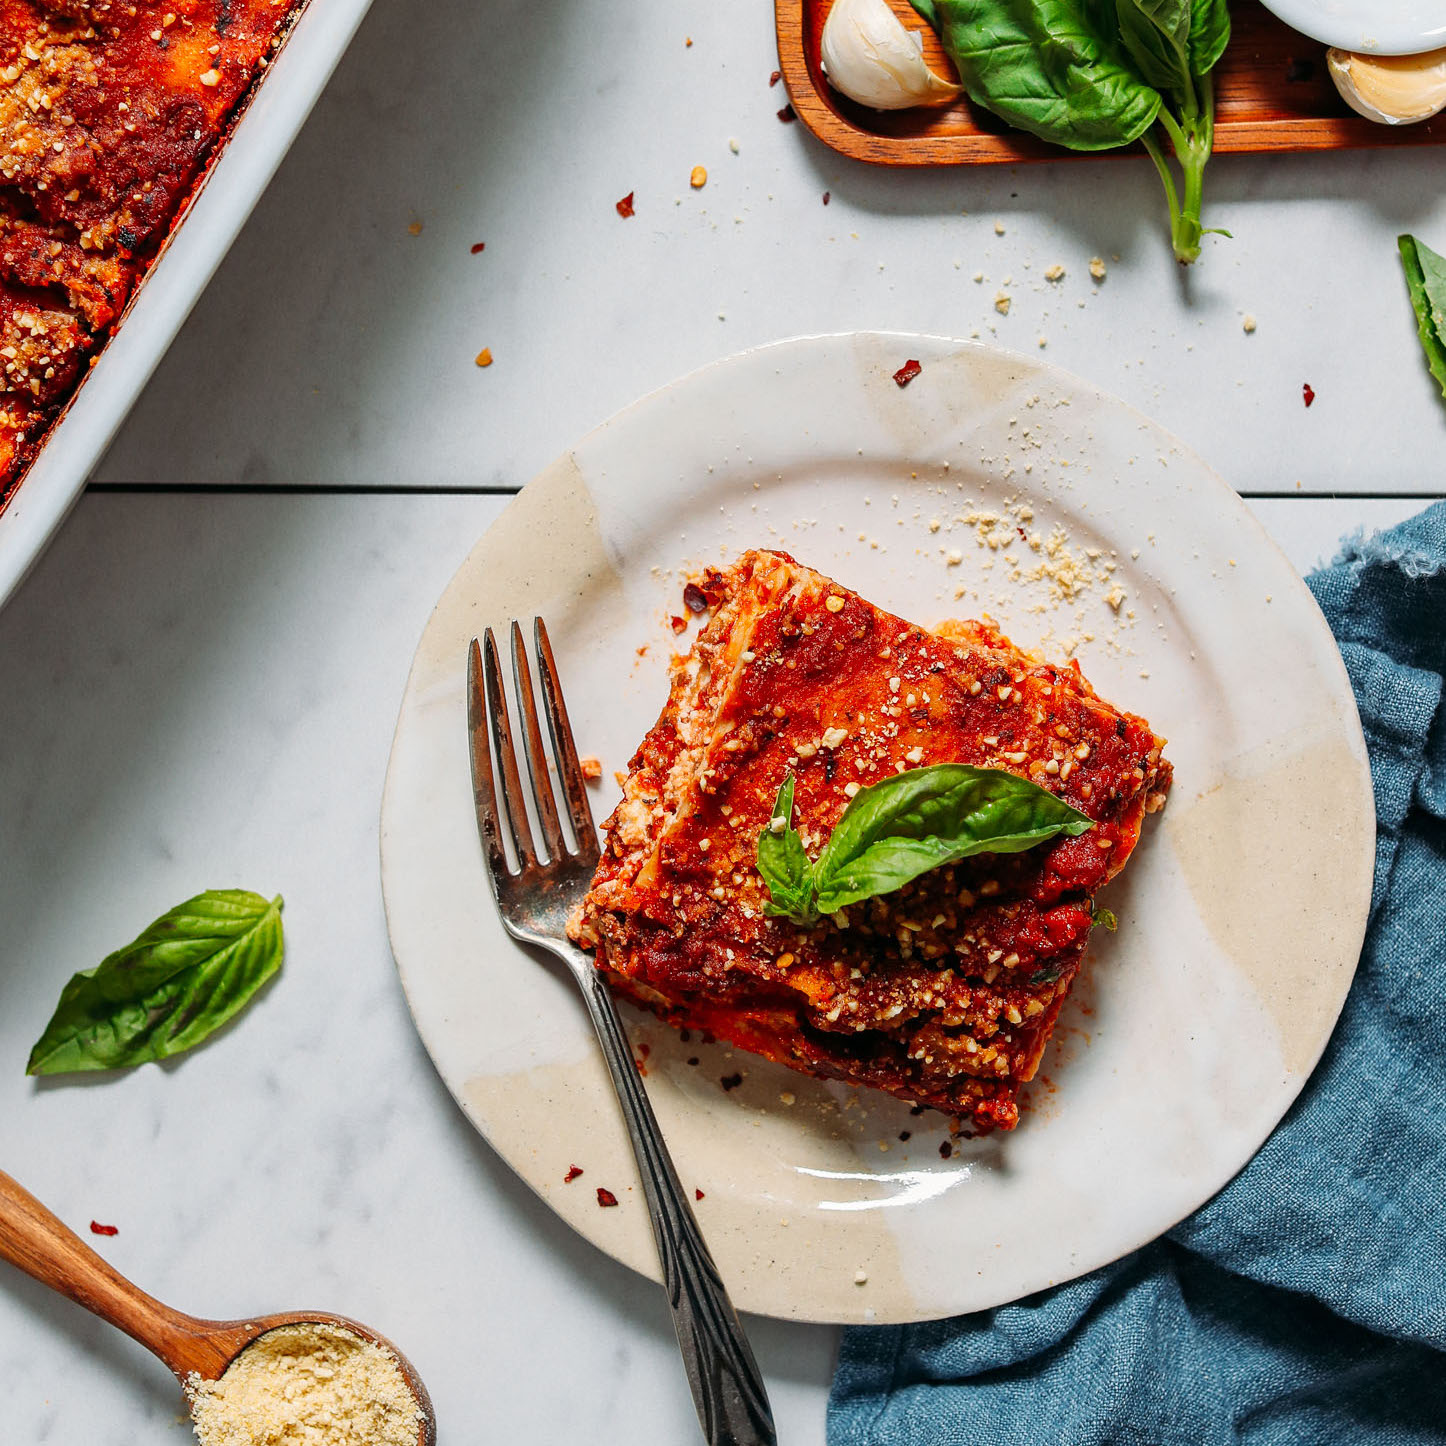 Top view of a slice of Dairy-Free Gluten-Free Lasagna topped with fresh basil